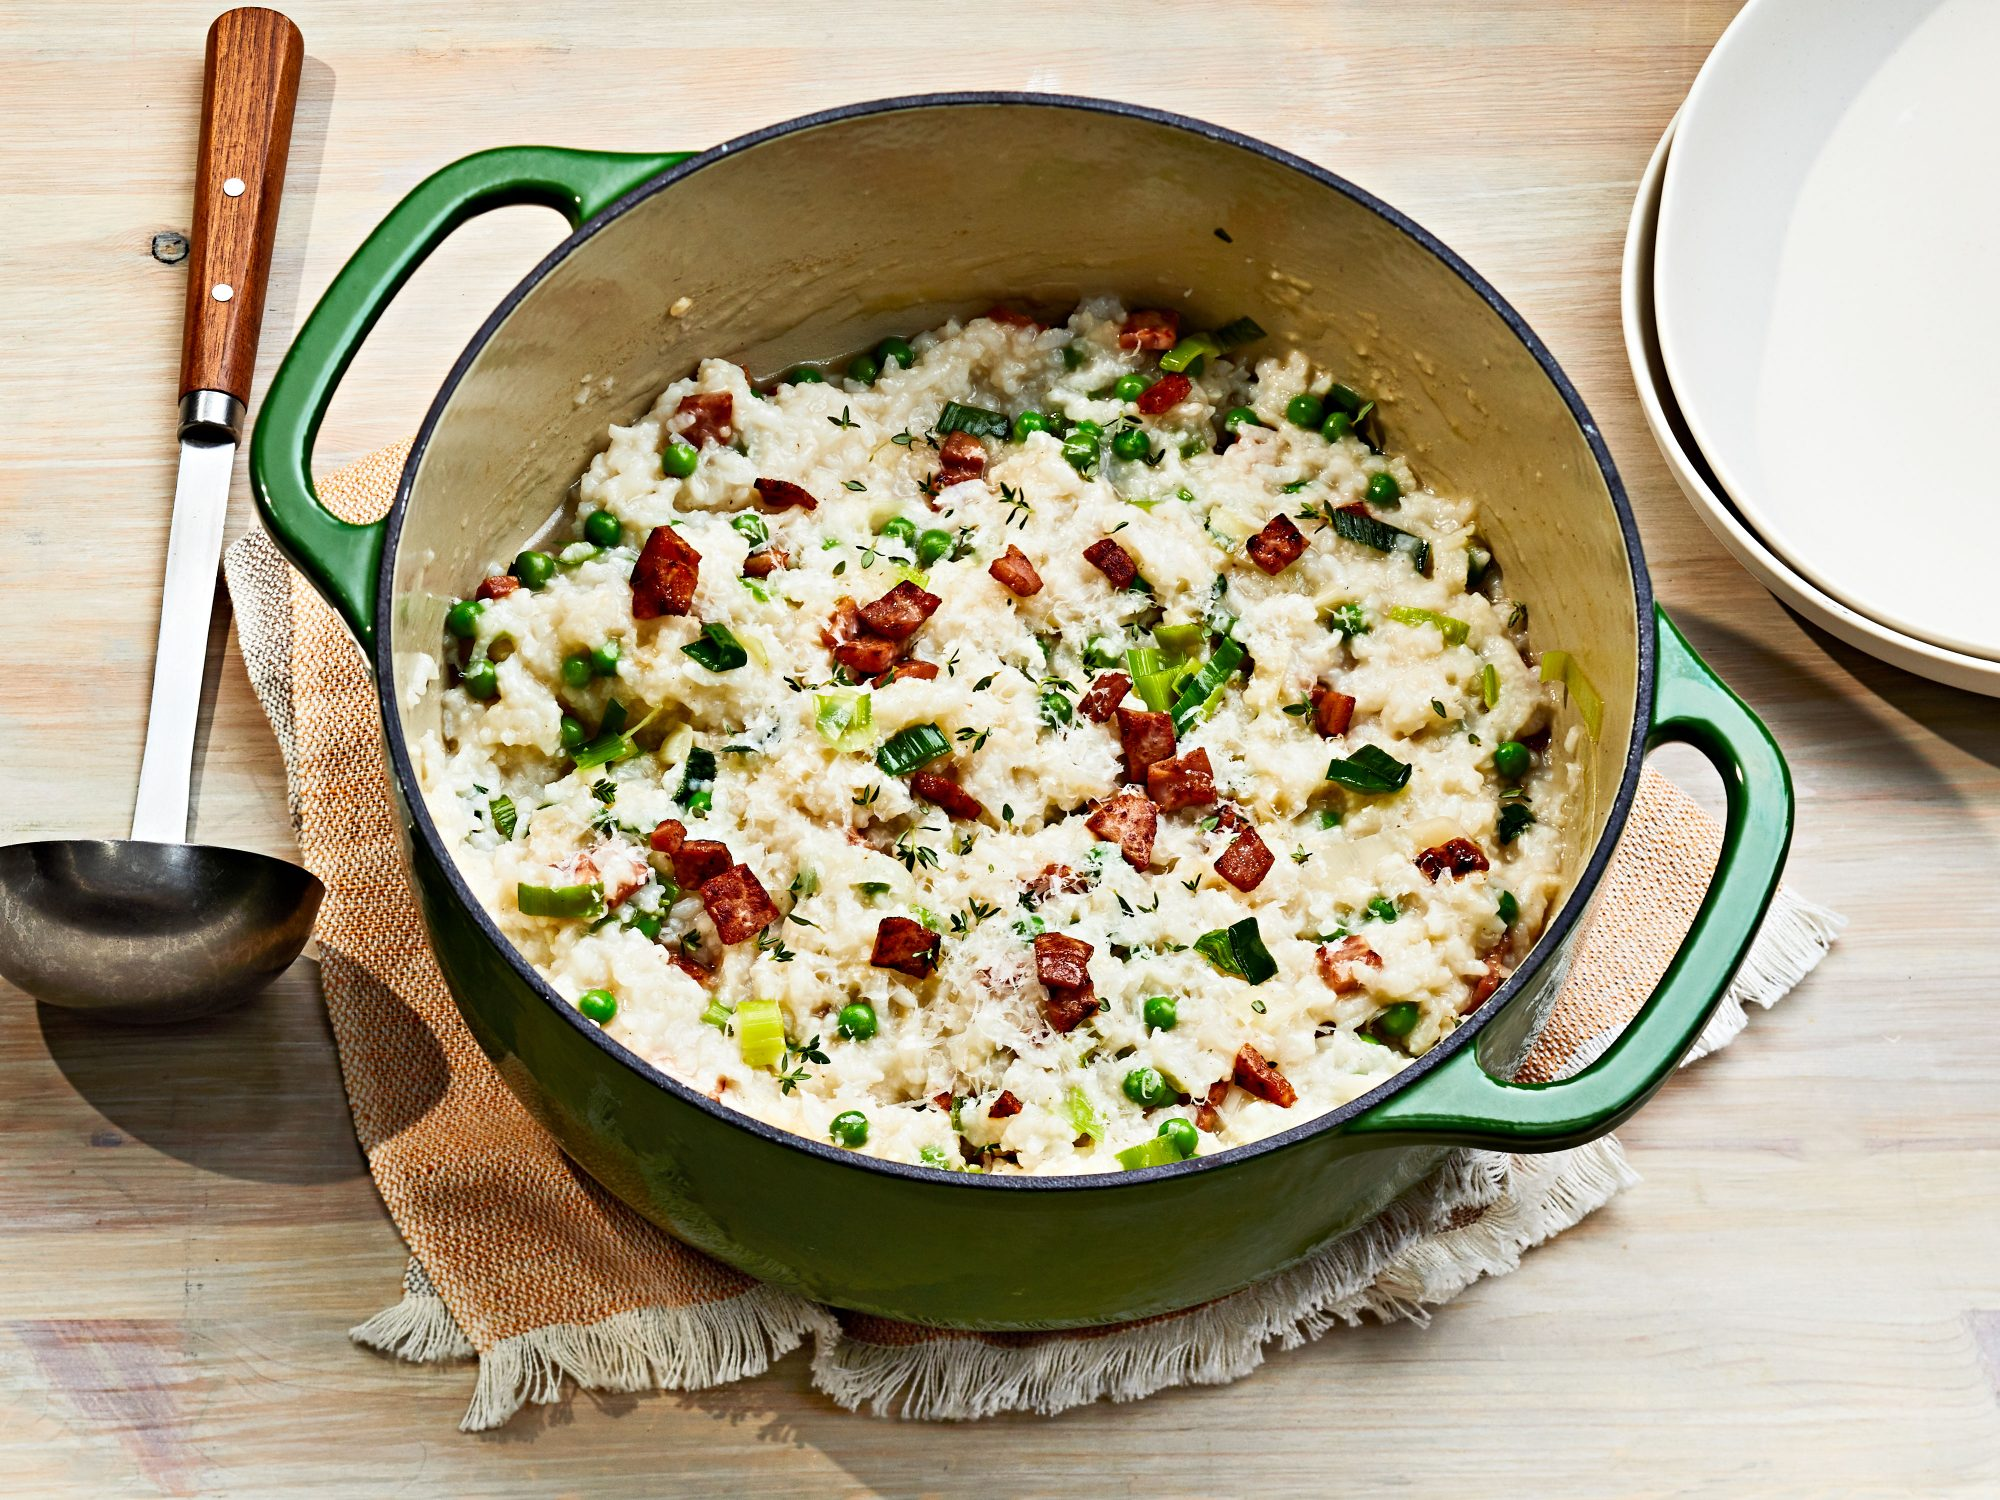 Oven-Baked Risotto with Ham, Leeks, and Peas